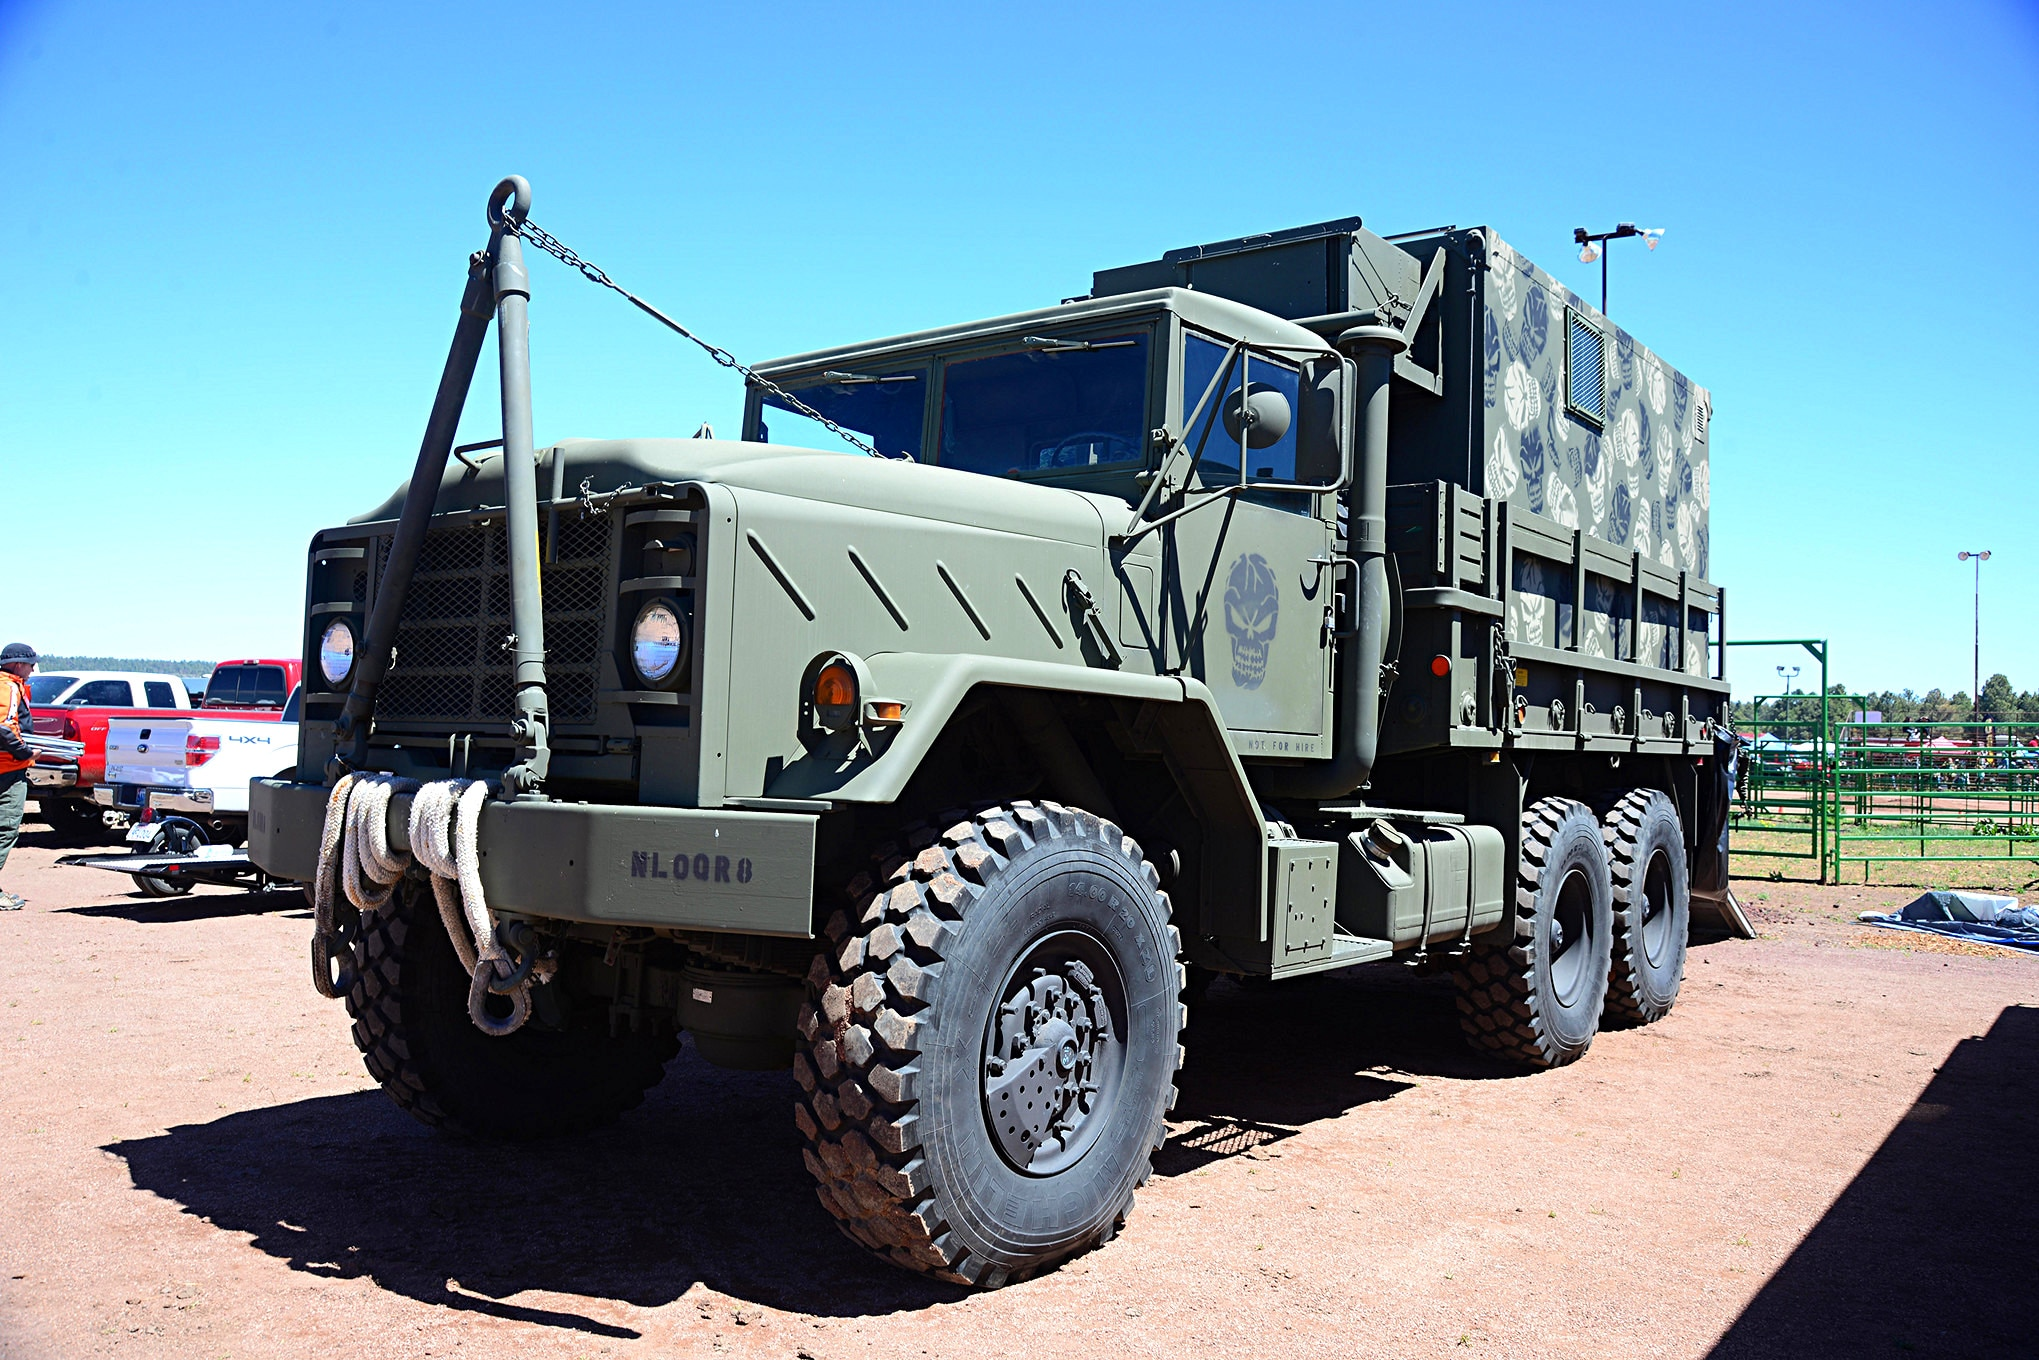 001 Lead 2016 Overland Expo 4x4 Vehicles Camping Flagstaff Mormon Lake Arizona Military 5 Ton Truck 6x6 Photo 107157397